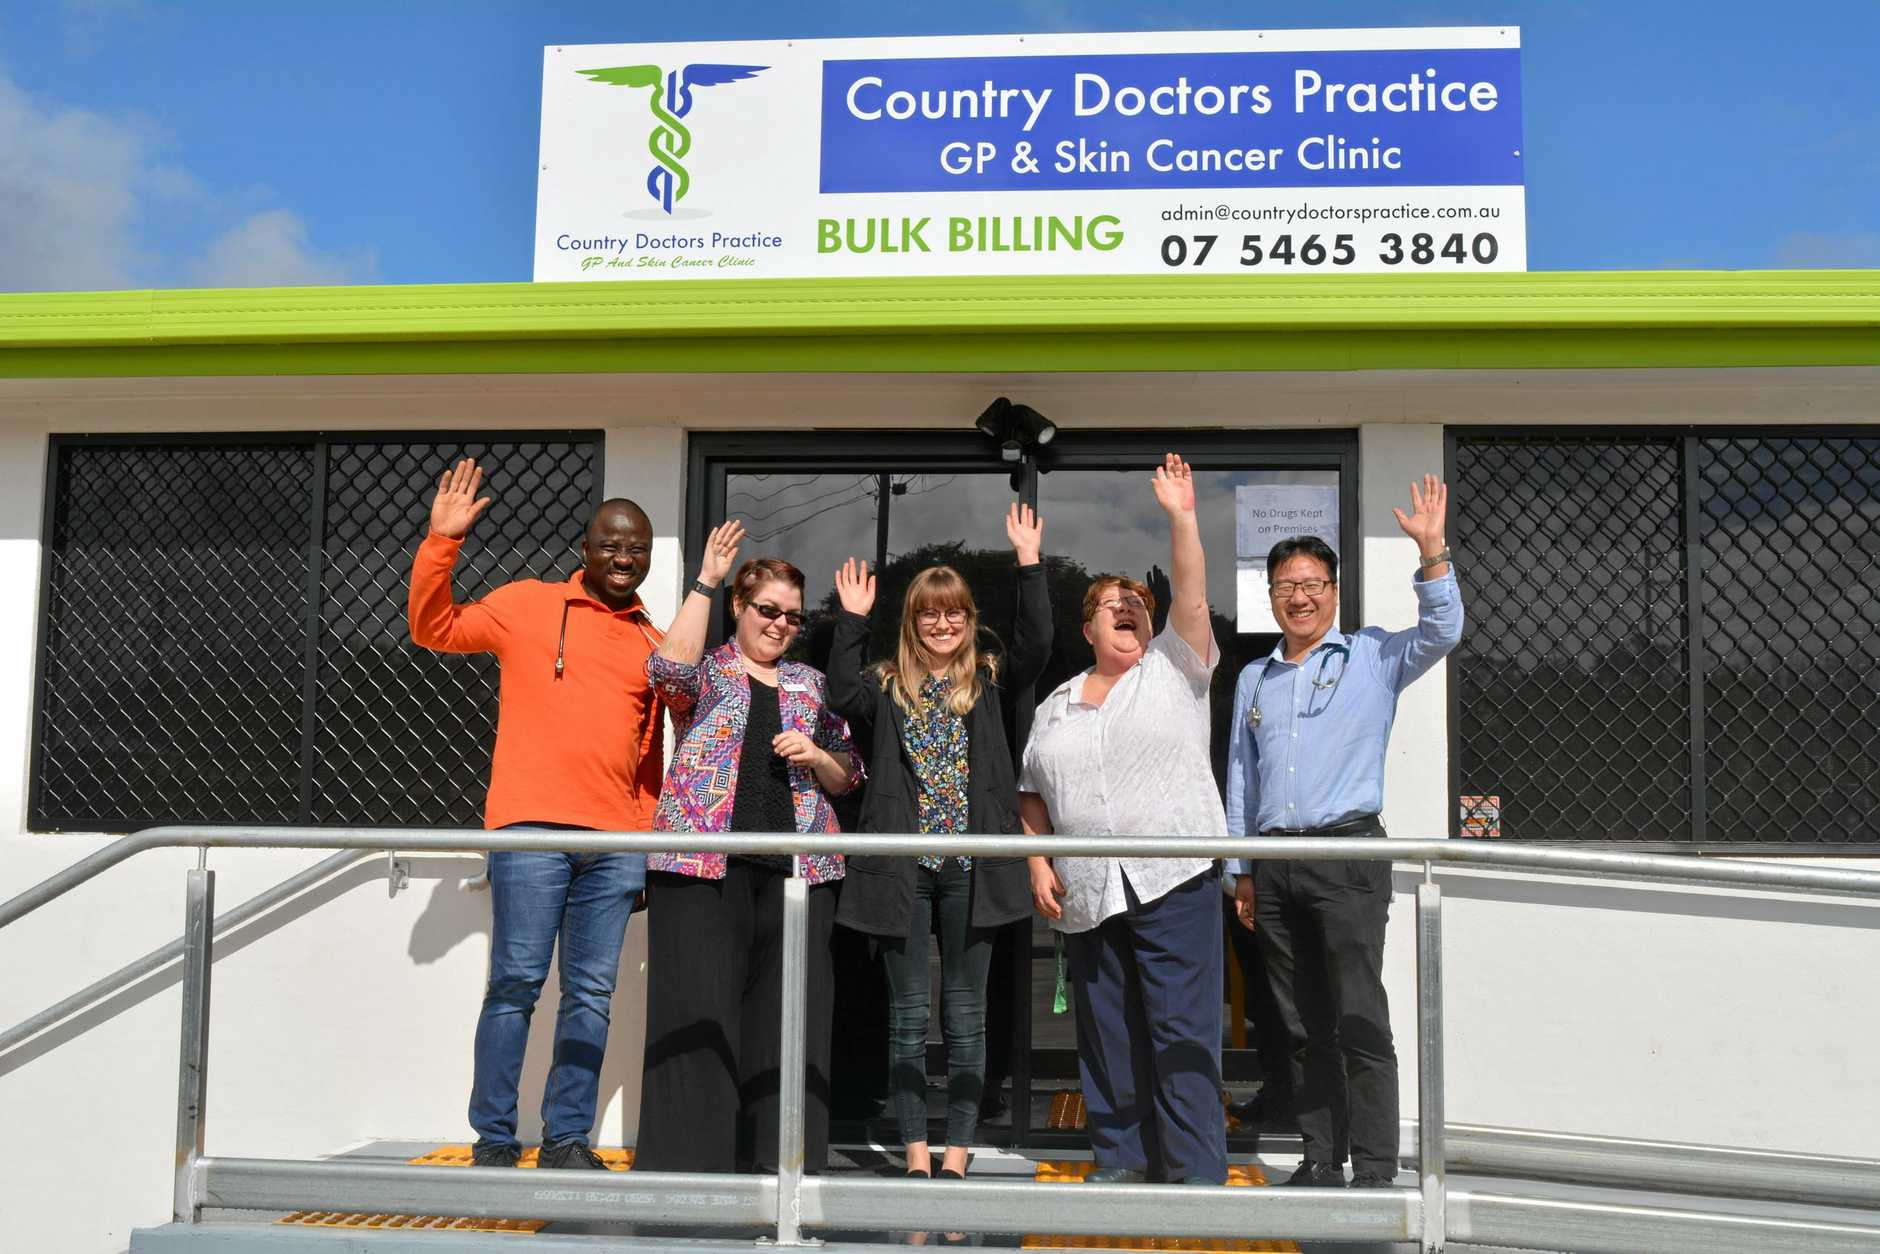 WE'RE OPEN: The Country Doctors Practice and Skin Cancer Clinic team outside of their new clinic on Patrick St